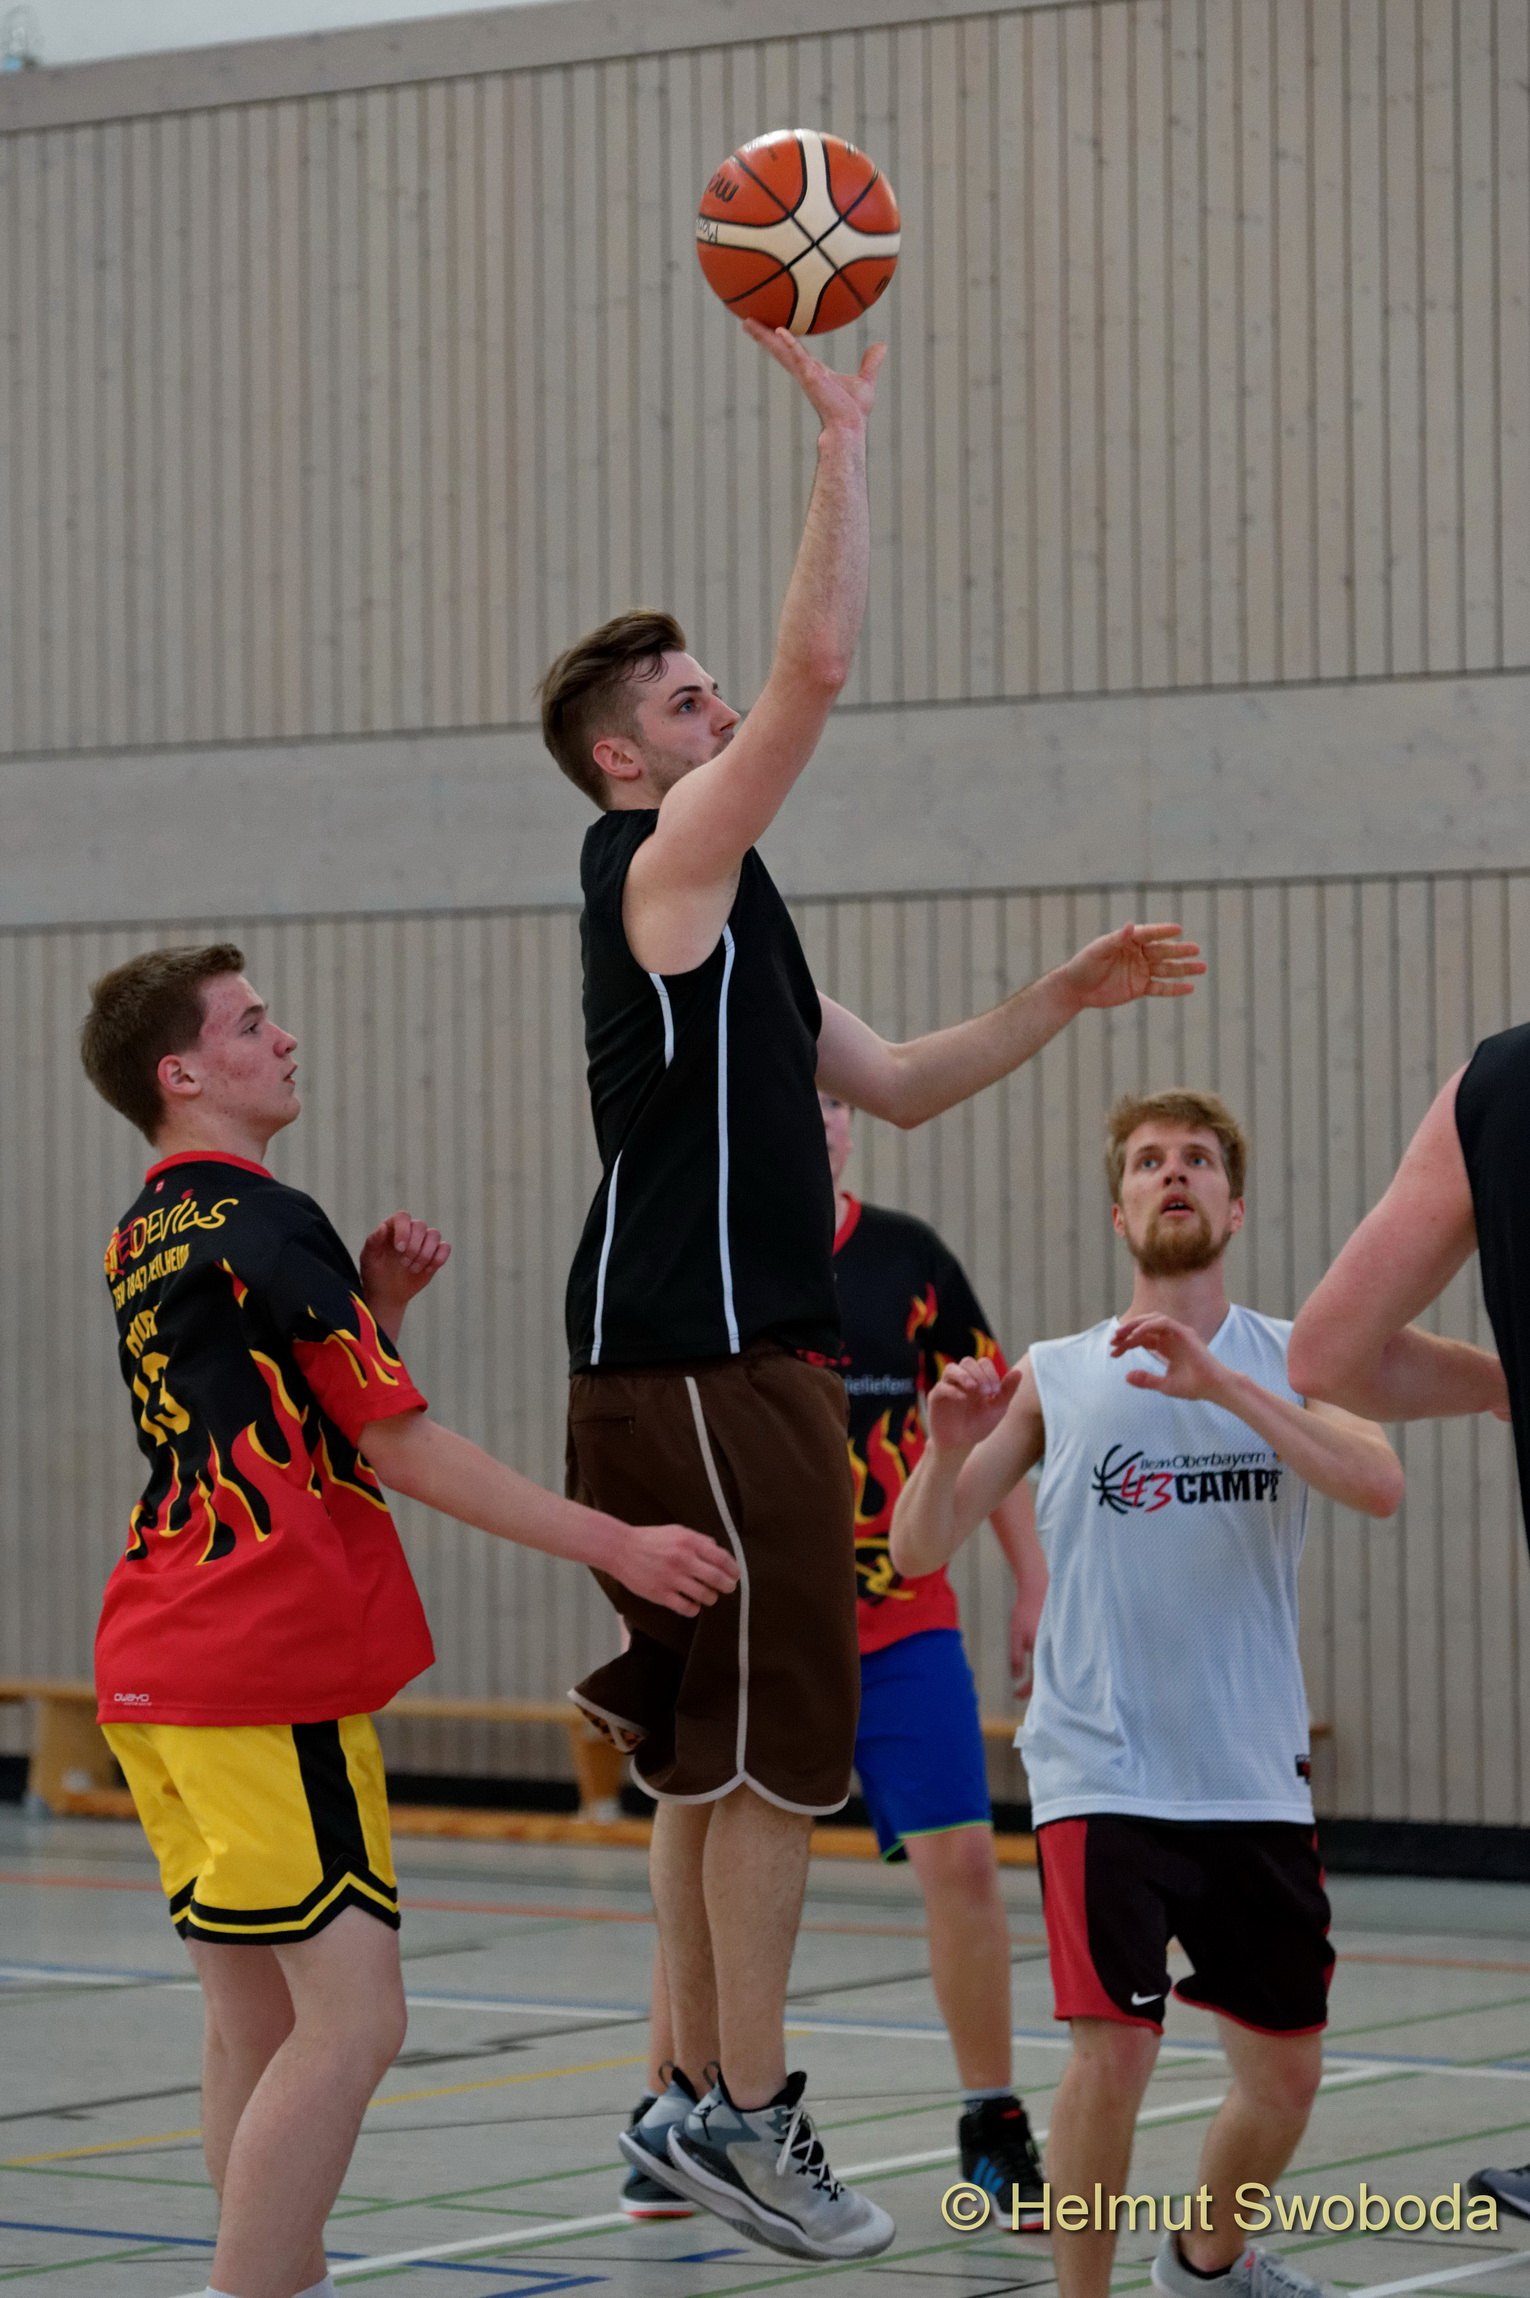 d170402-161235400-100-basketball_weilheim-mixed-turnier_33000554143_o